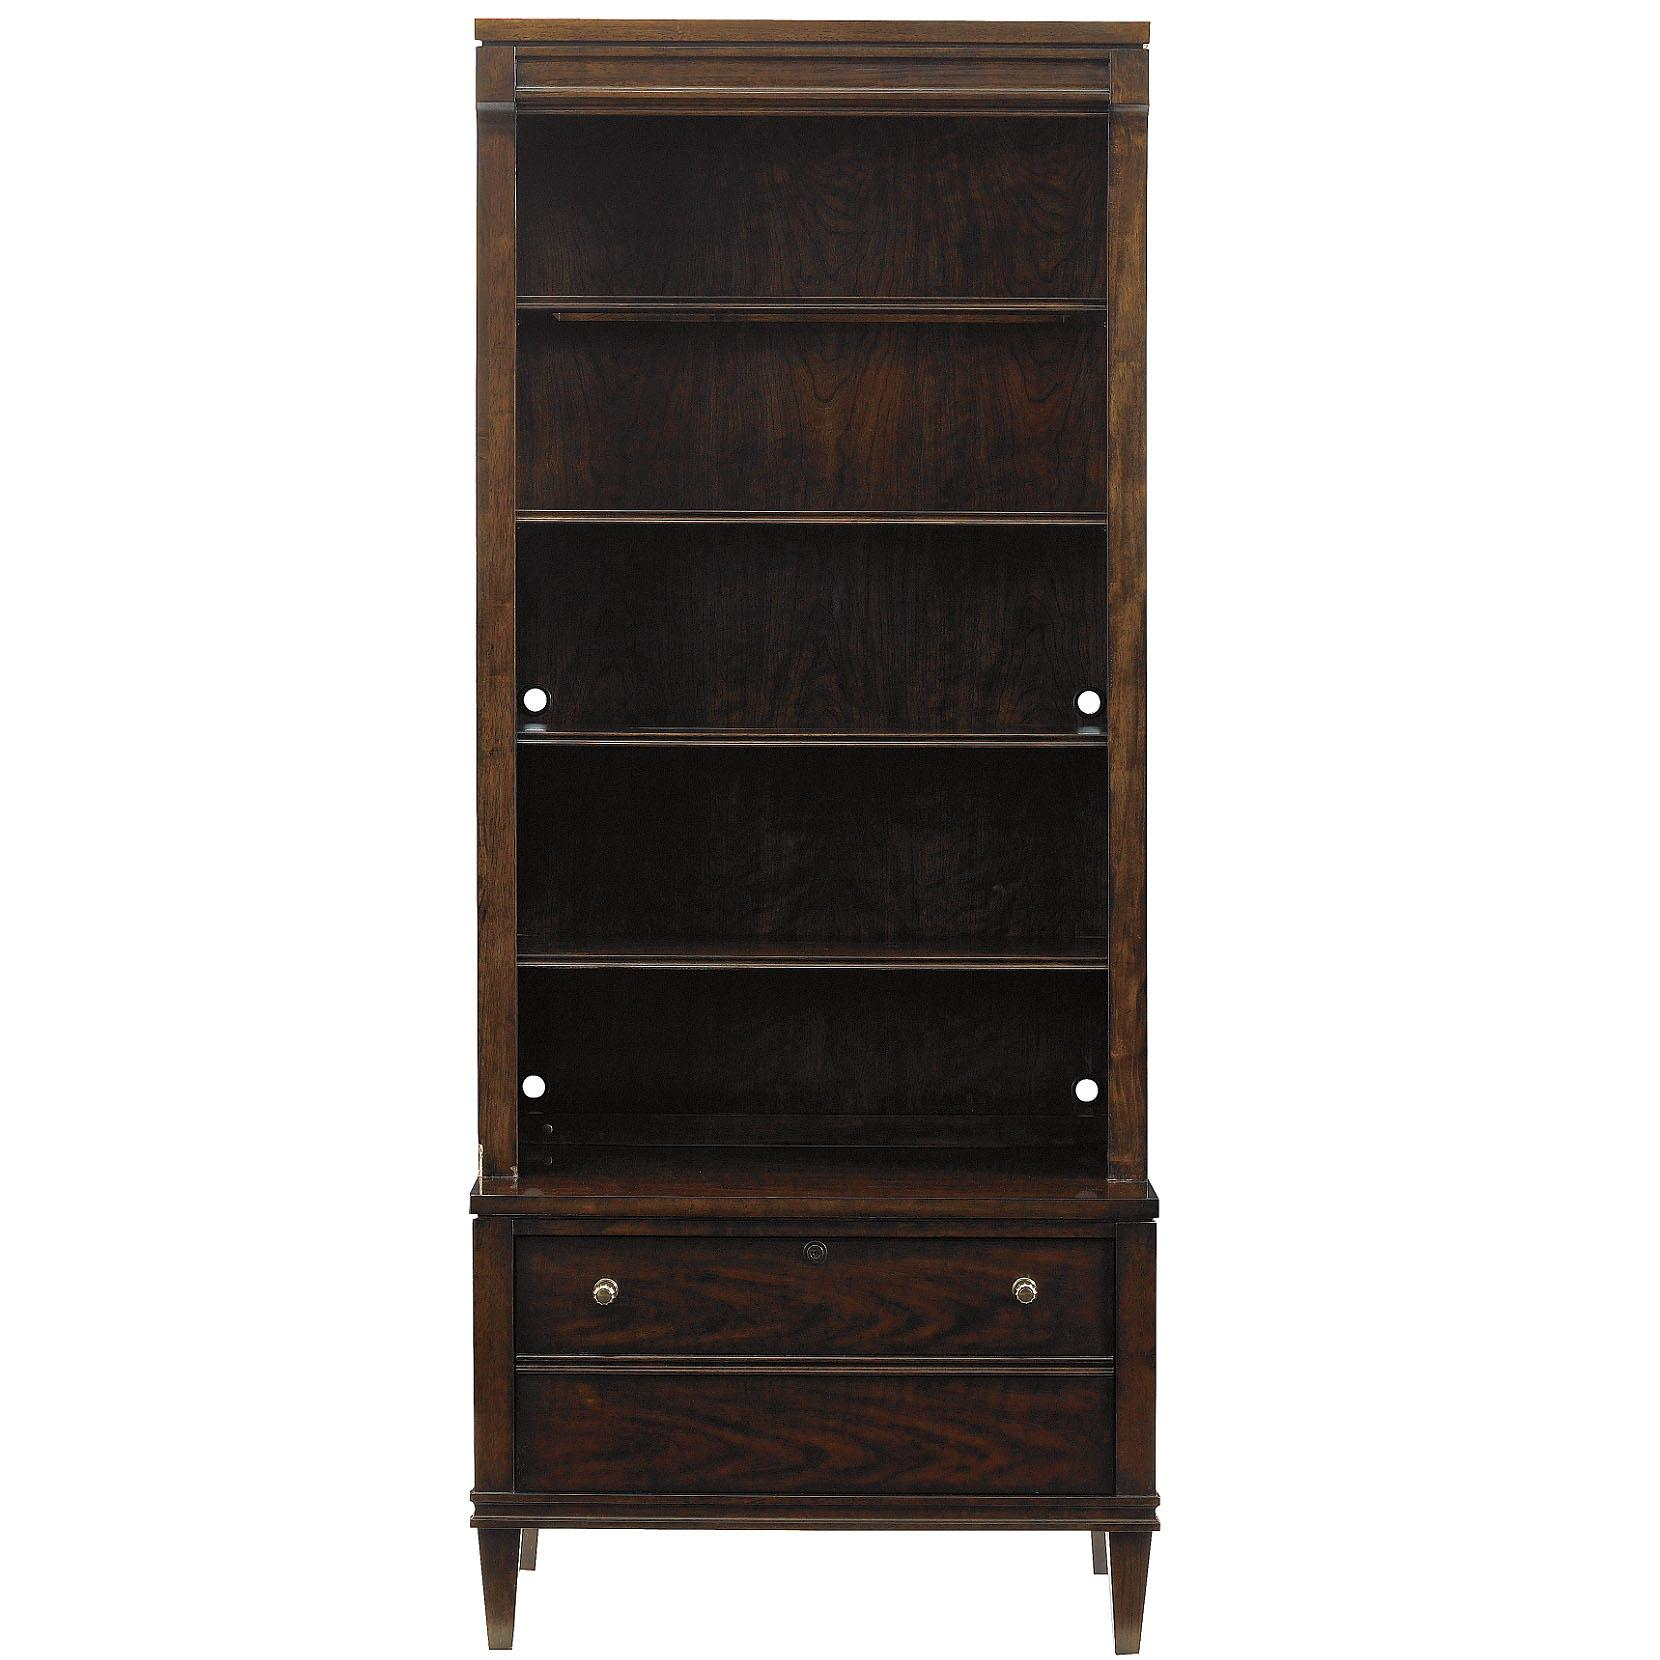 Stanley Furniture Avalon Heights Boulevard Bookcase - Item Number: 193-18-18